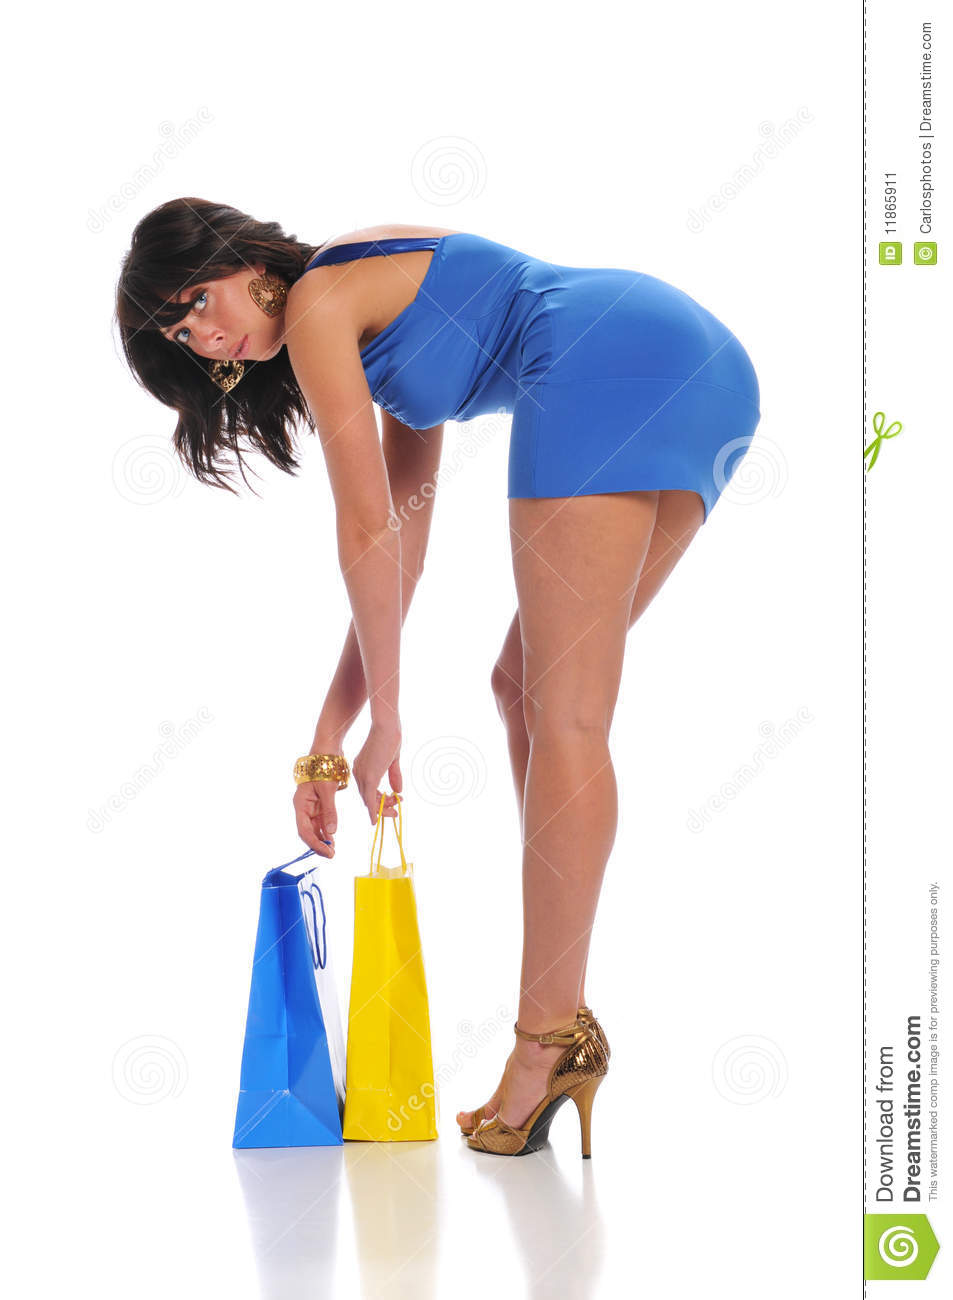 Unique Woman Holding Grocery Bags Woman Holding Grocery Bags Woman Holding Shopping Bags